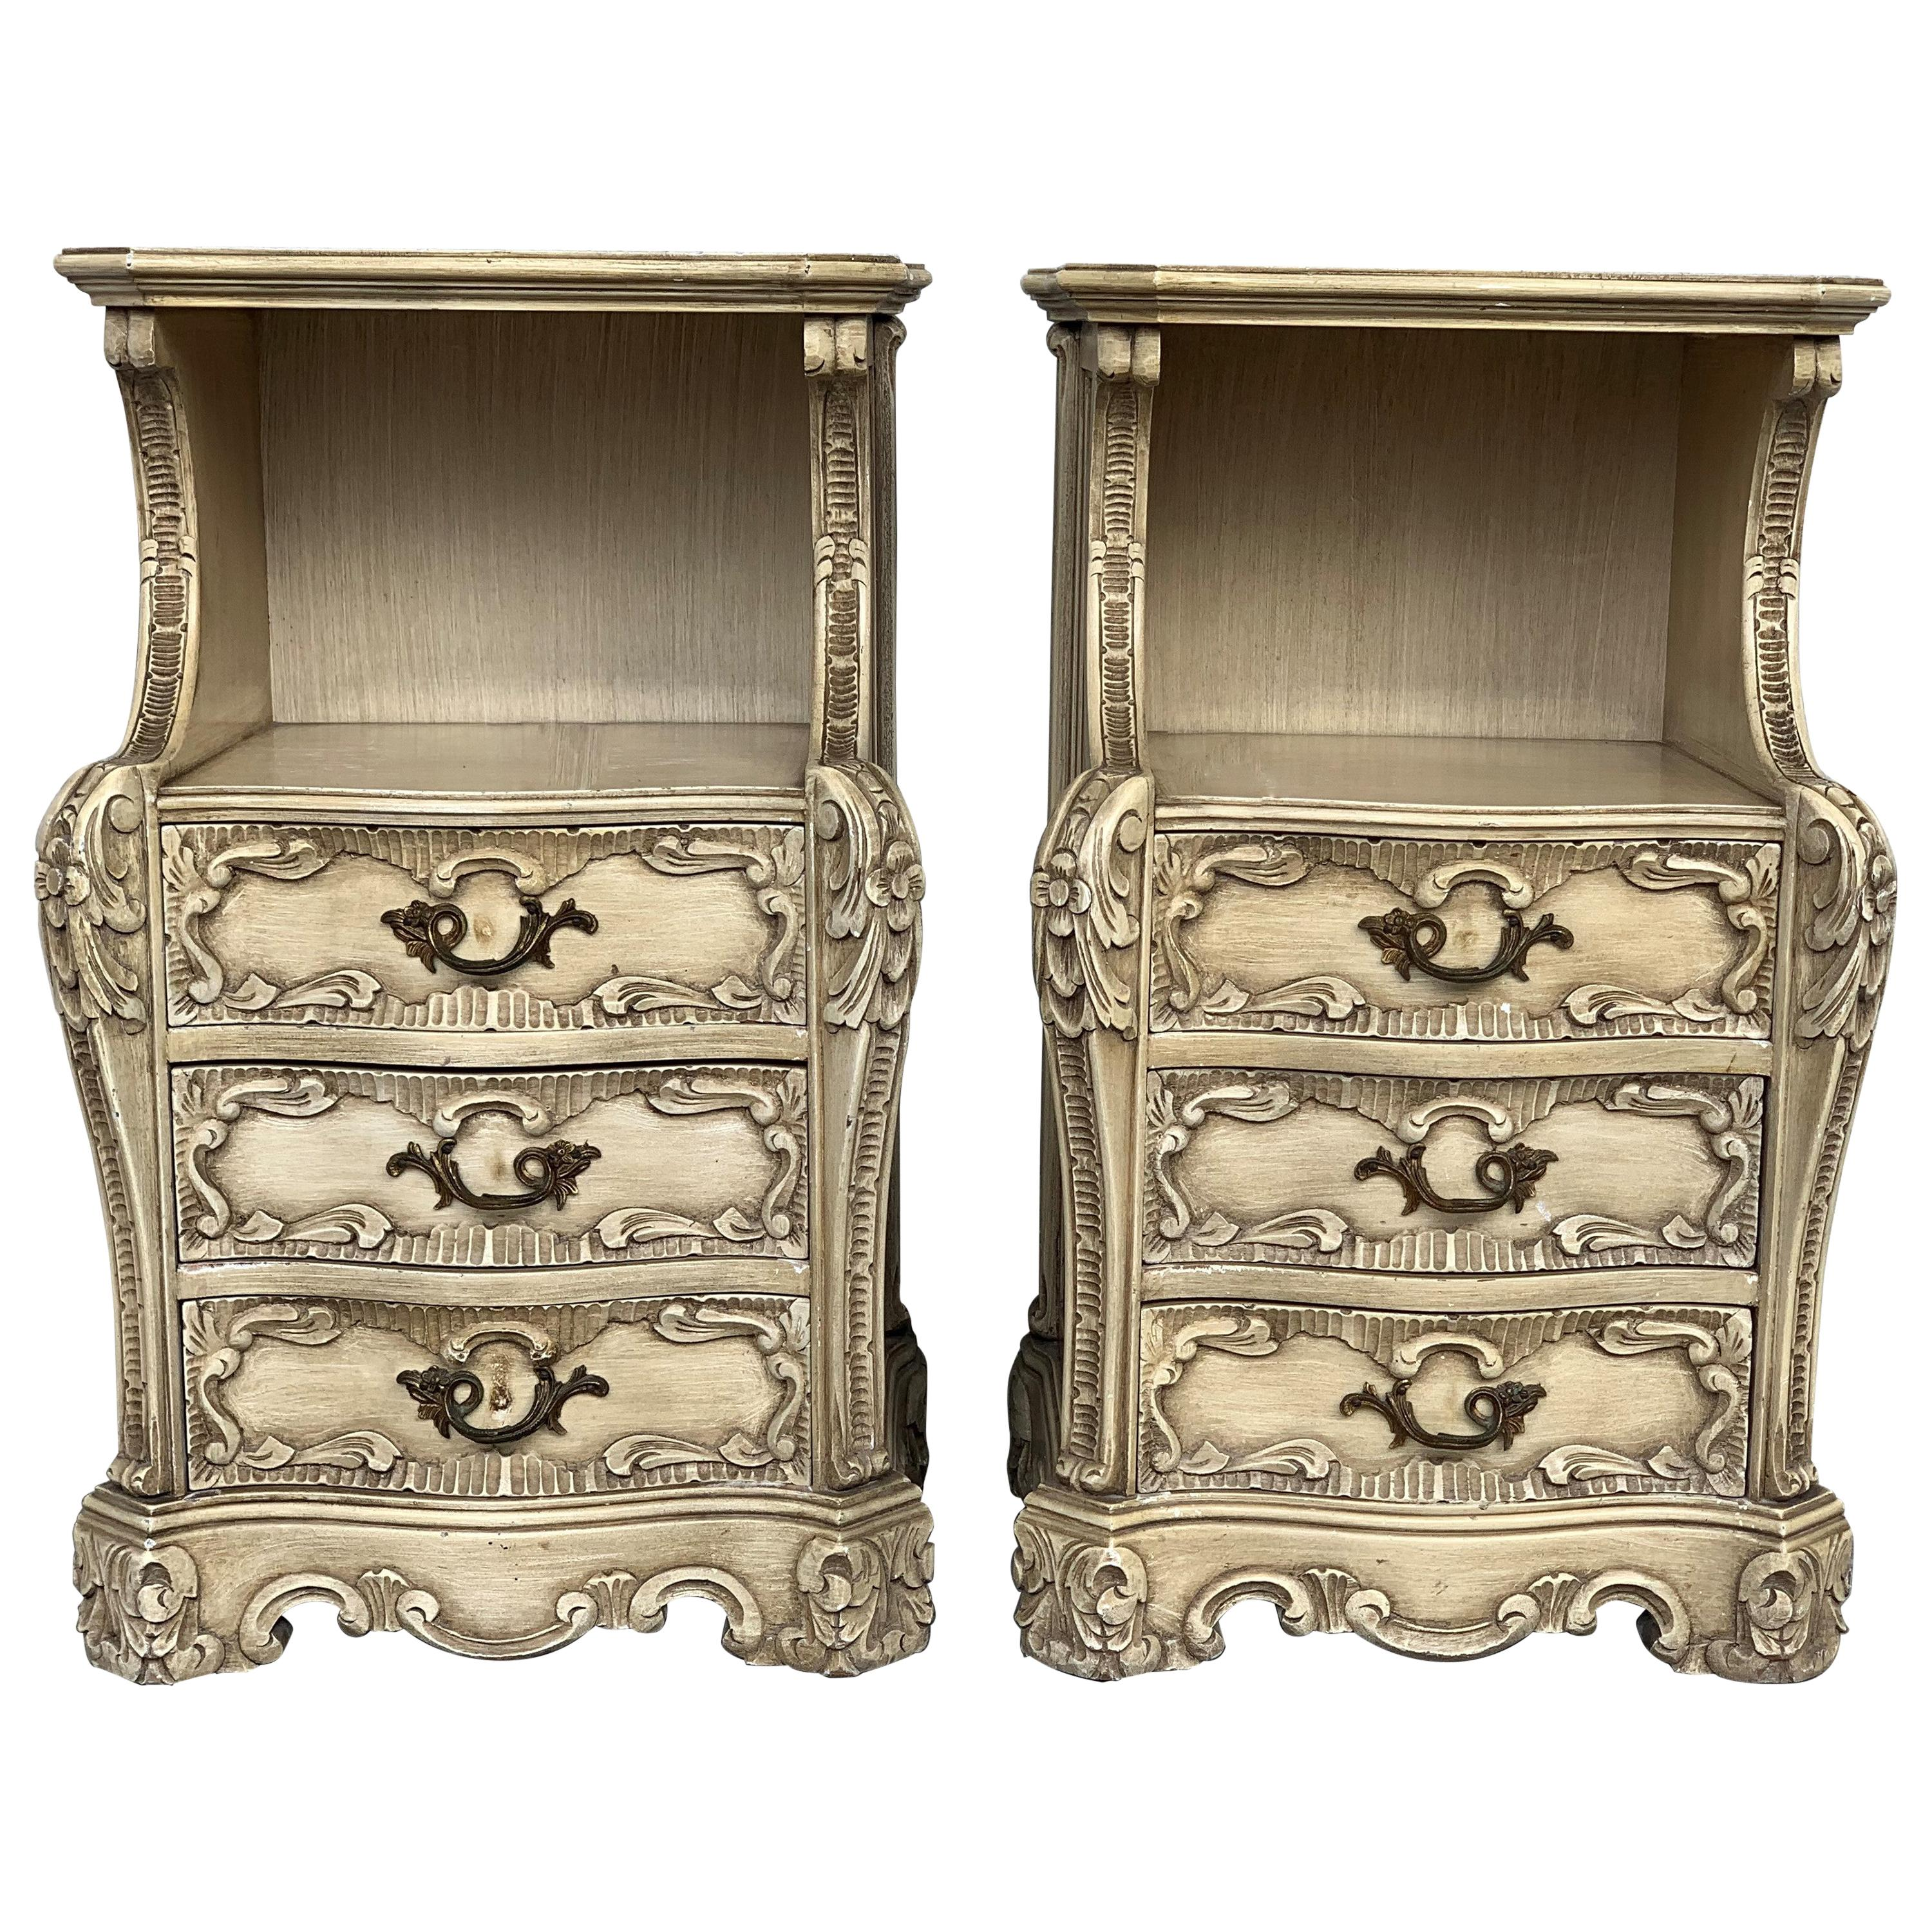 Carved French Rococo Style Pair of Nightstands with Open Shelve, circa 1930s